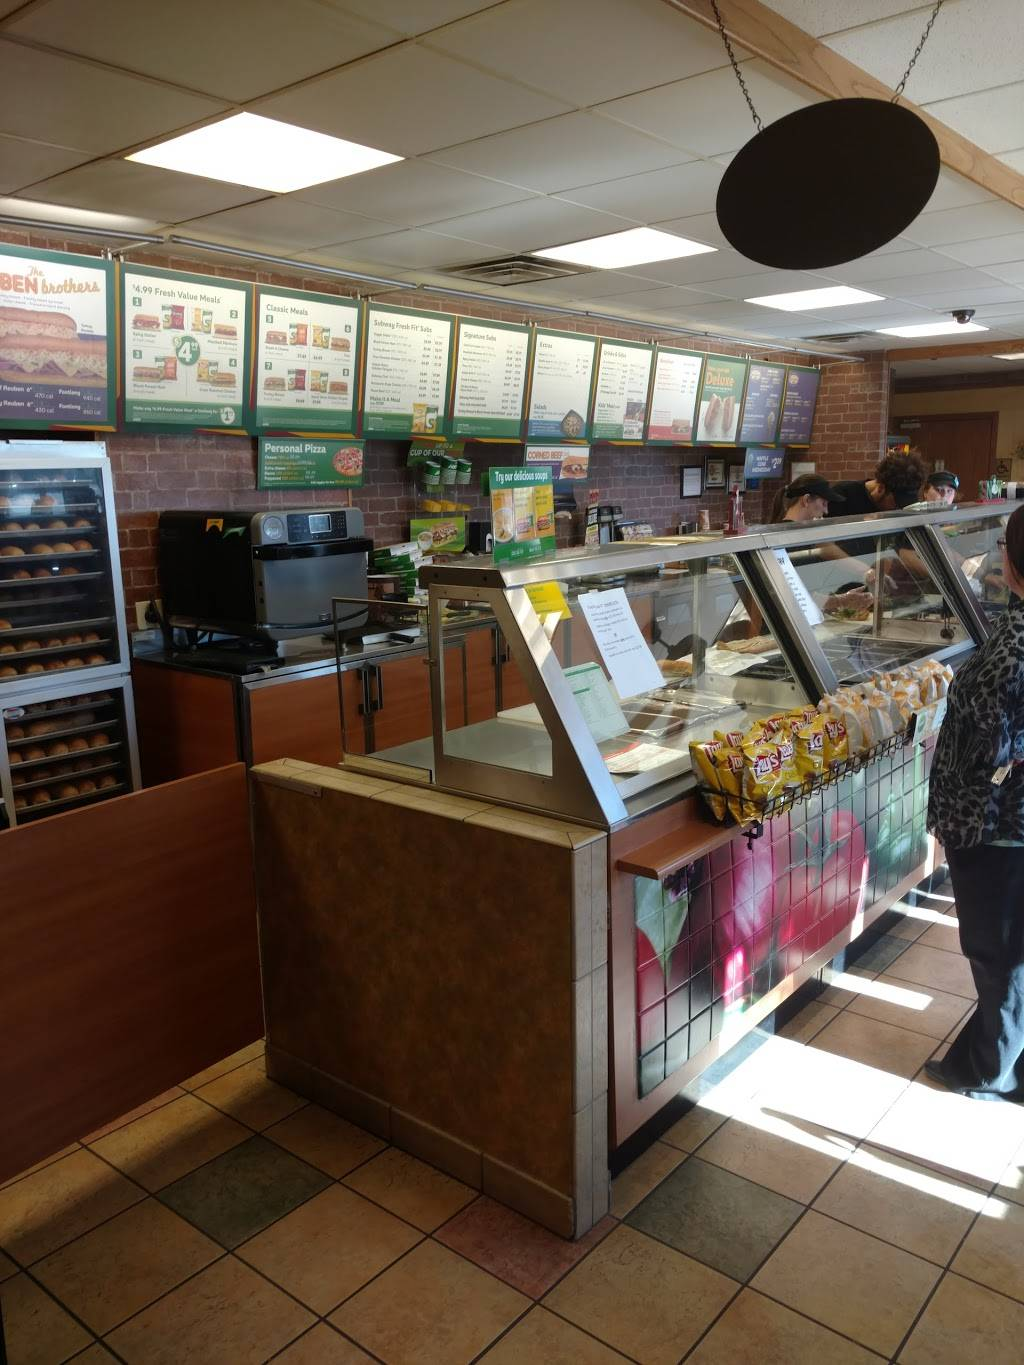 Subway   meal takeaway   1803 N Lincoln Ave, York, NE 68467, USA   4023621613 OR +1 402-362-1613